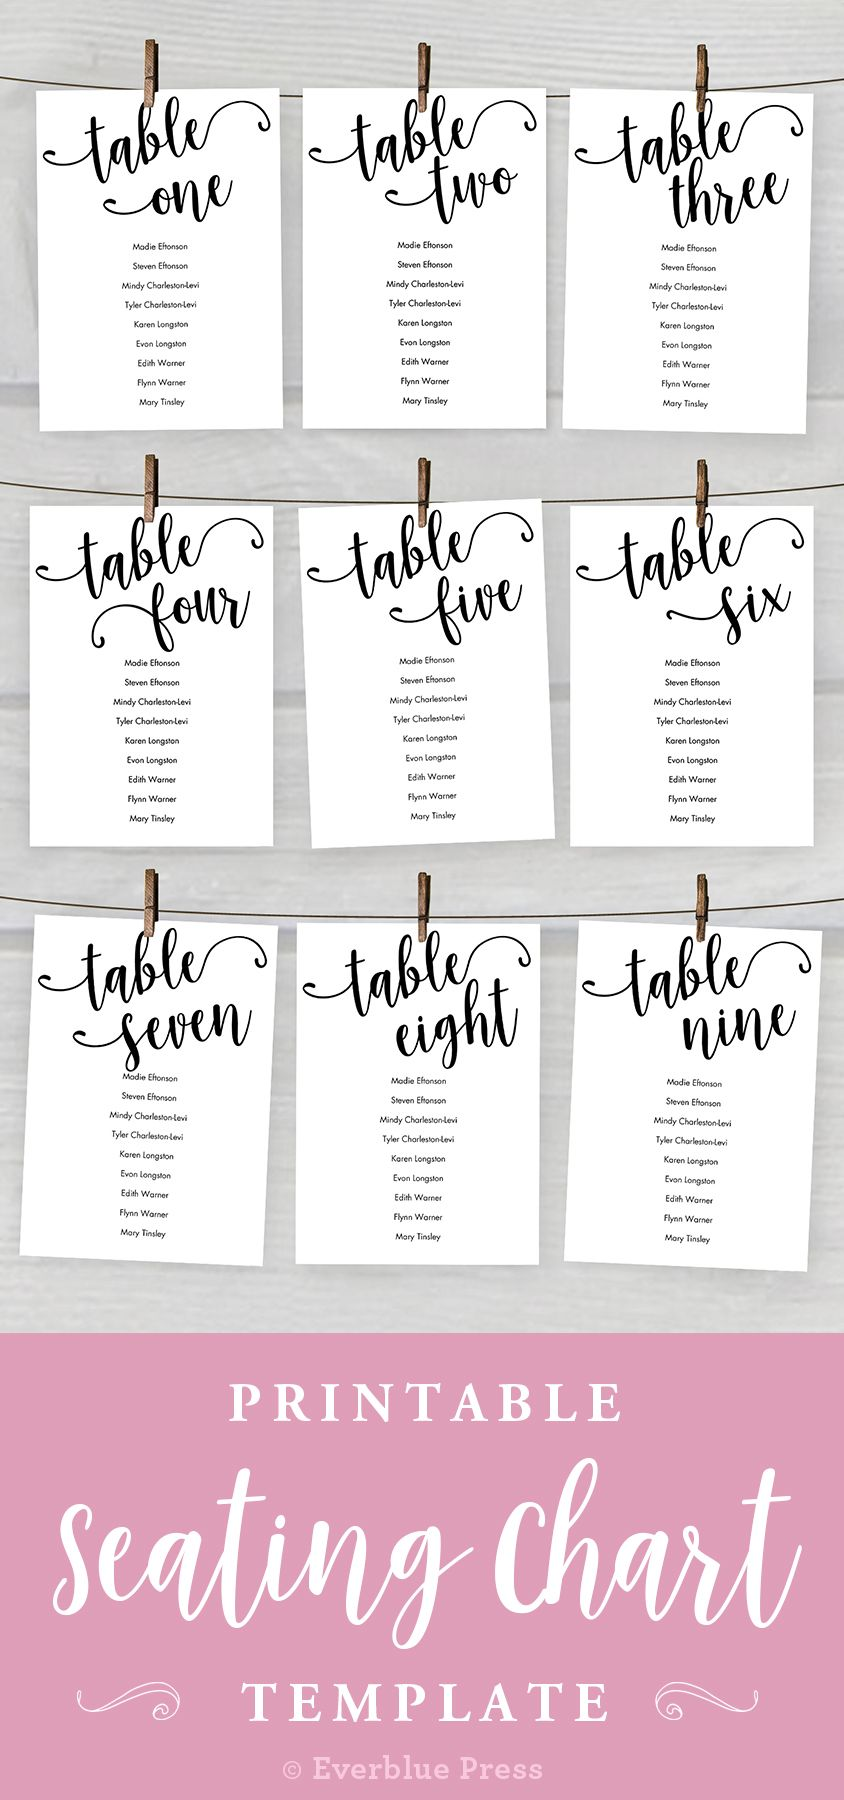 photograph about Printable Seating Chart Template called 5x7 Wedding ceremony Seating Chart Playing cards Printable, Tables 1-20